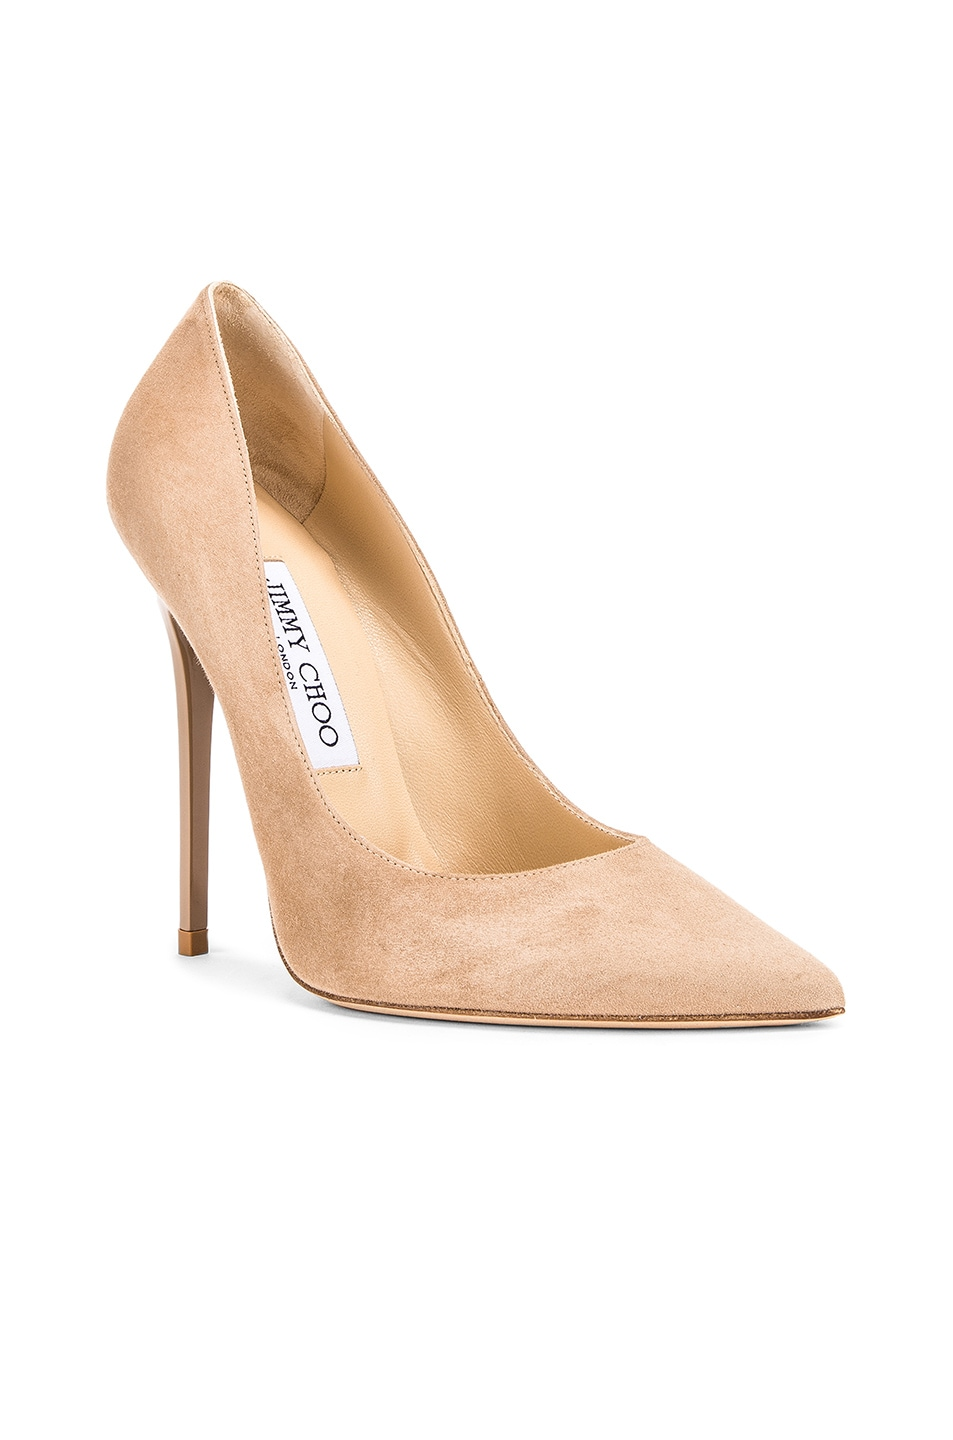 Image 2 of Jimmy Choo Anouk 120 Suede Pumps in Nude